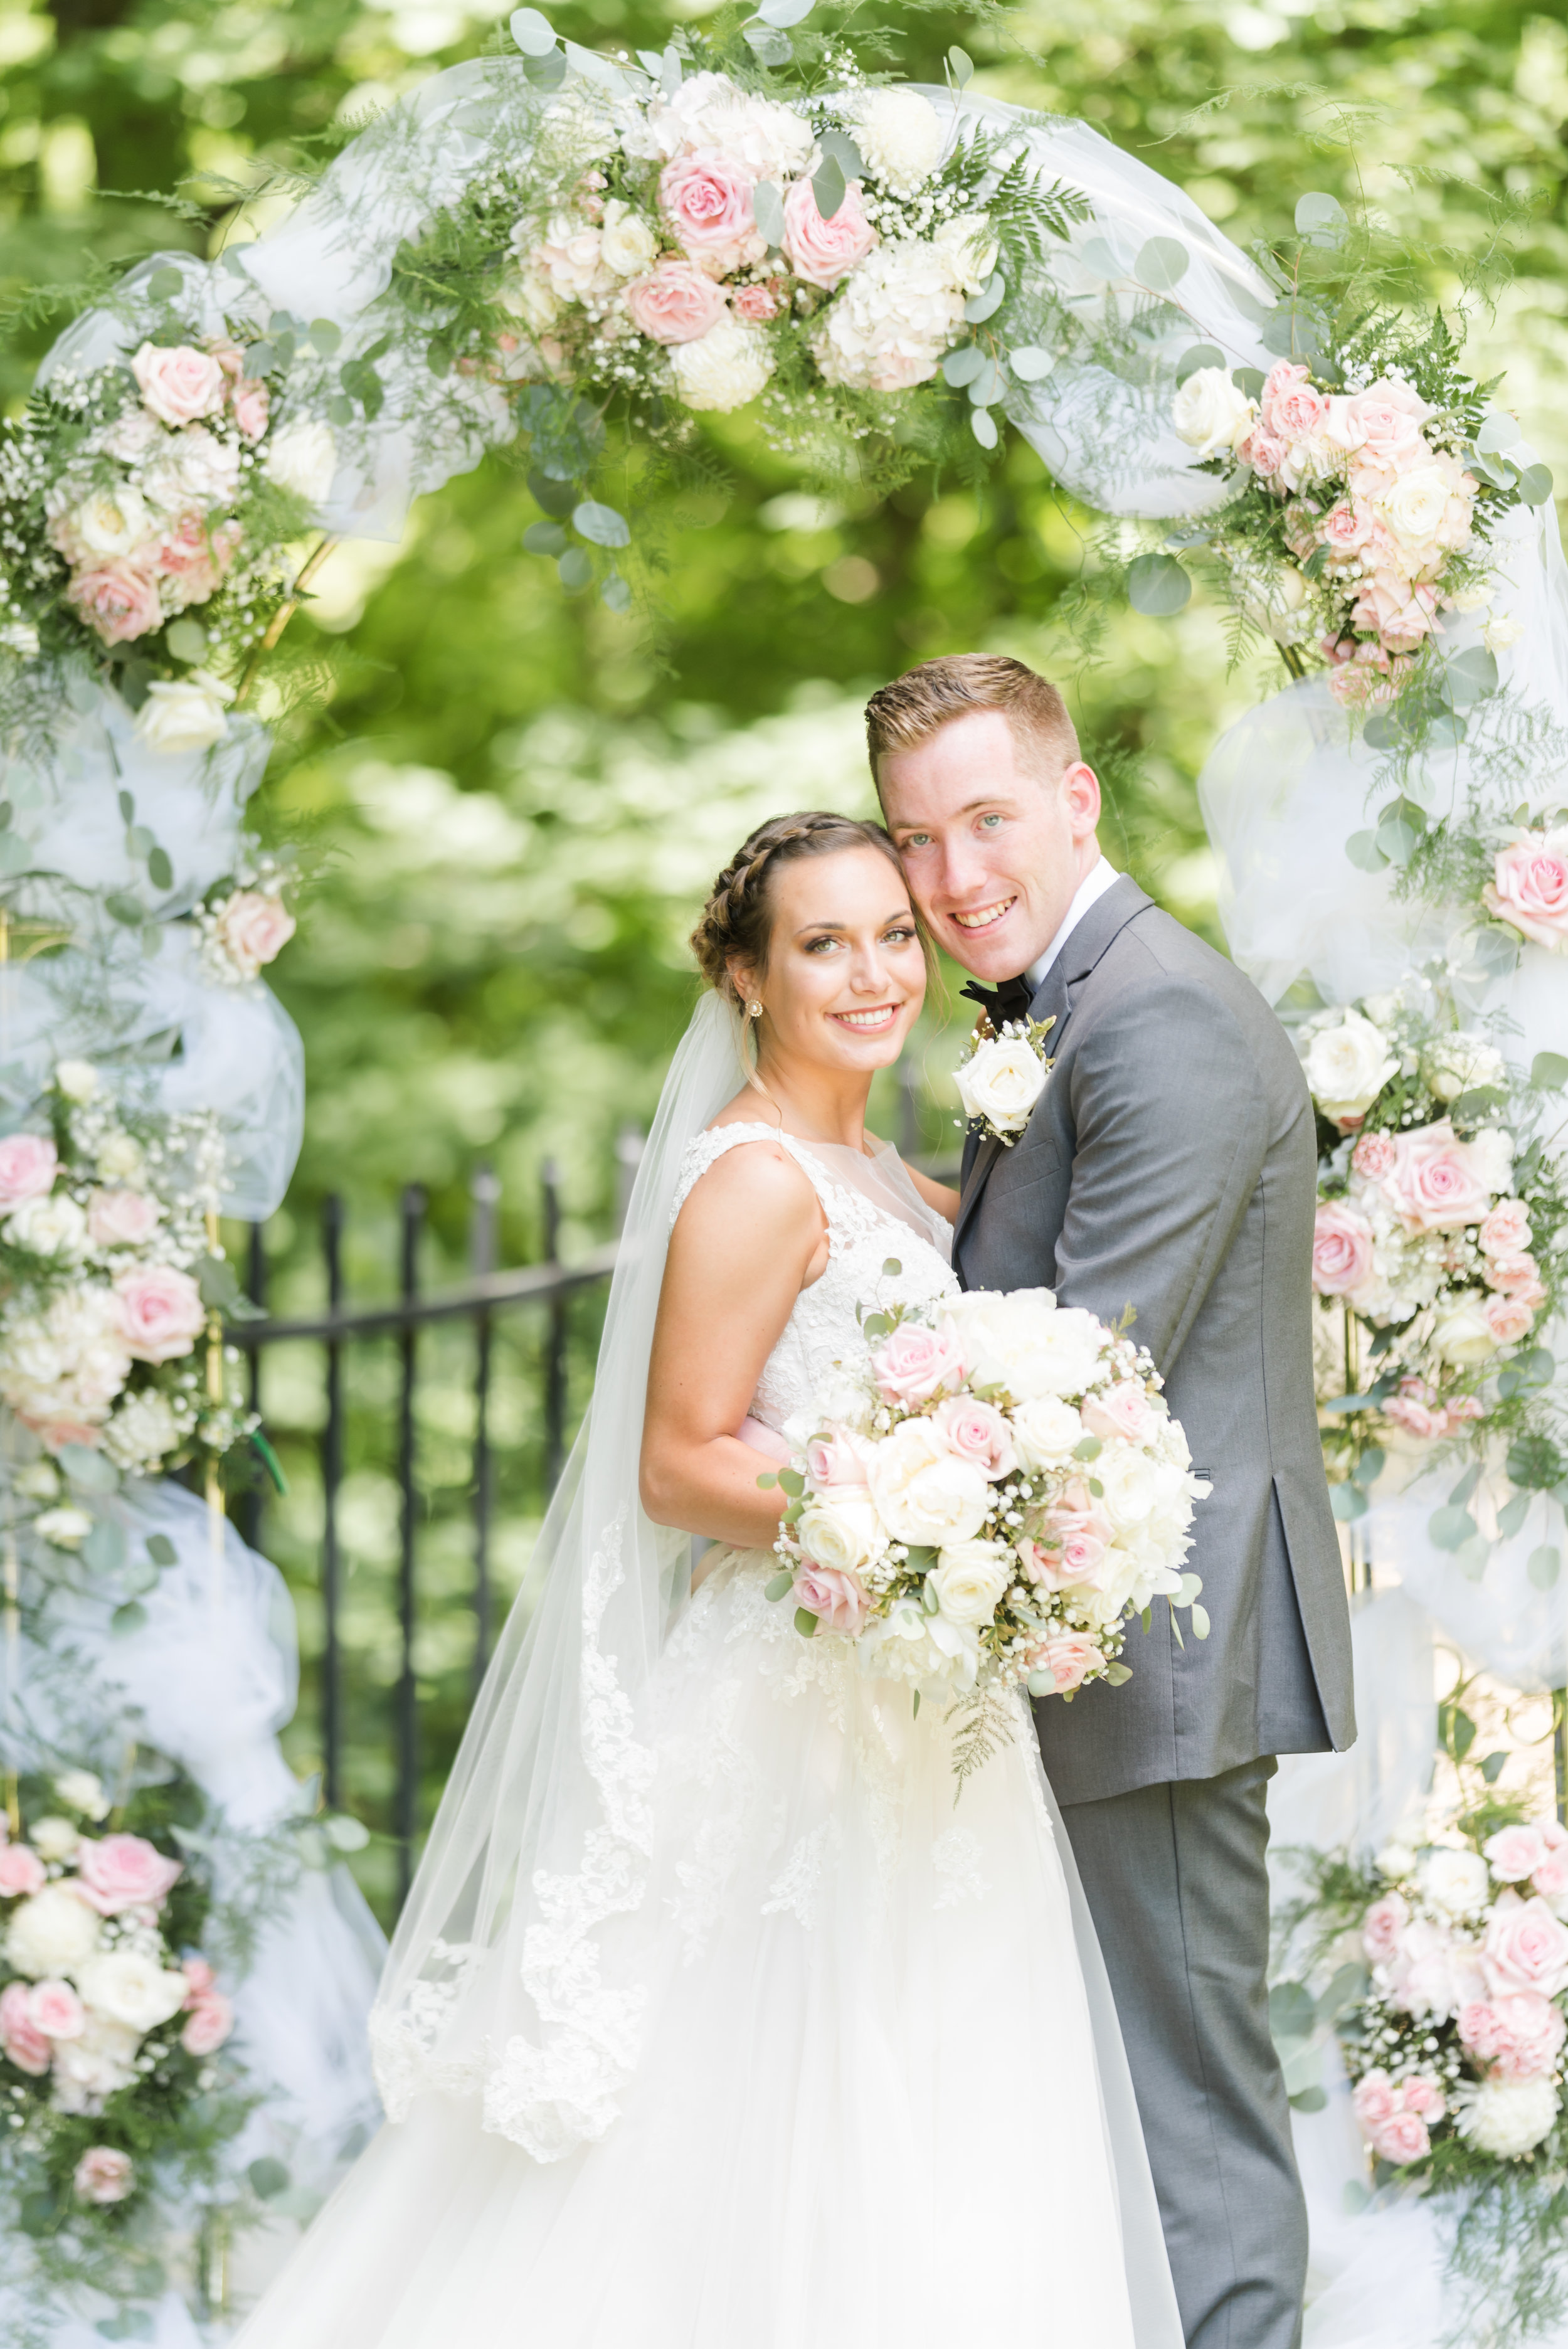 How to Have the Wedding of Your Dreams on a Small Budget